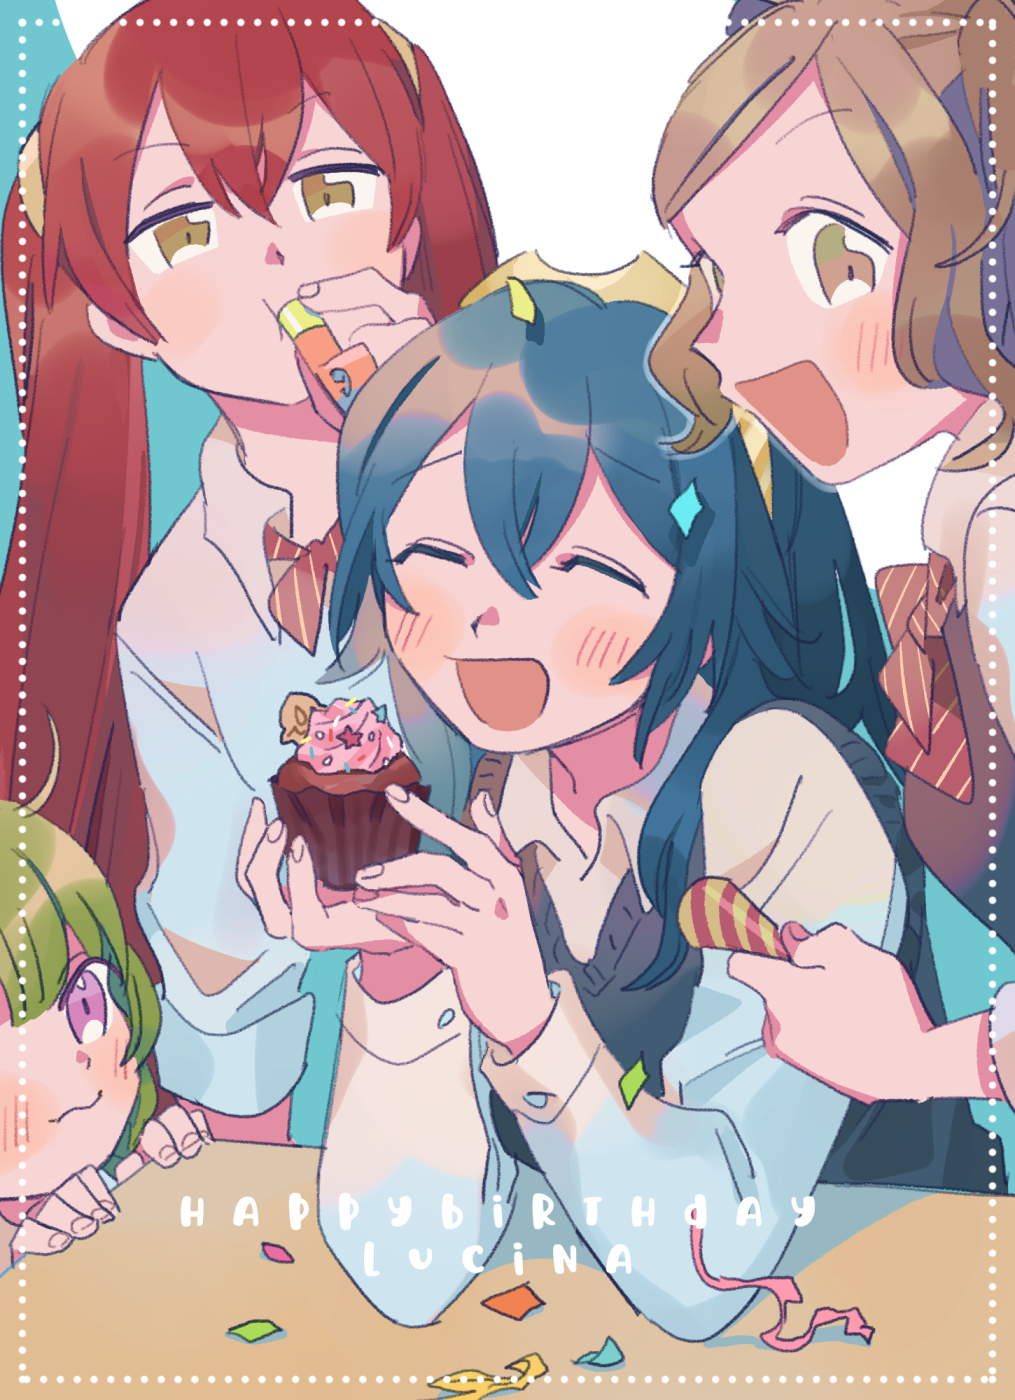 4girls ahoge alternate_costume birthday blue_hair blush bow brown_eyes brown_hair character_name closed_eyes closed_mouth commentary confetti cupcake cynthia_(fire_emblem) english_commentary english_text eyebrows_visible_through_hair fire_emblem fire_emblem_awakening food green_hair hair_ornament happy_birthday highres holding holding_food long_hair looking_at_viewer lucina lucina_(fire_emblem) multiple_girls nah_(fire_emblem) oneroom-disco open_mouth party_horn party_popper red_bow redhead school_uniform severa_(fire_emblem) shirt short_hair smile tiara twintails uniform vest violet_eyes white_shirt